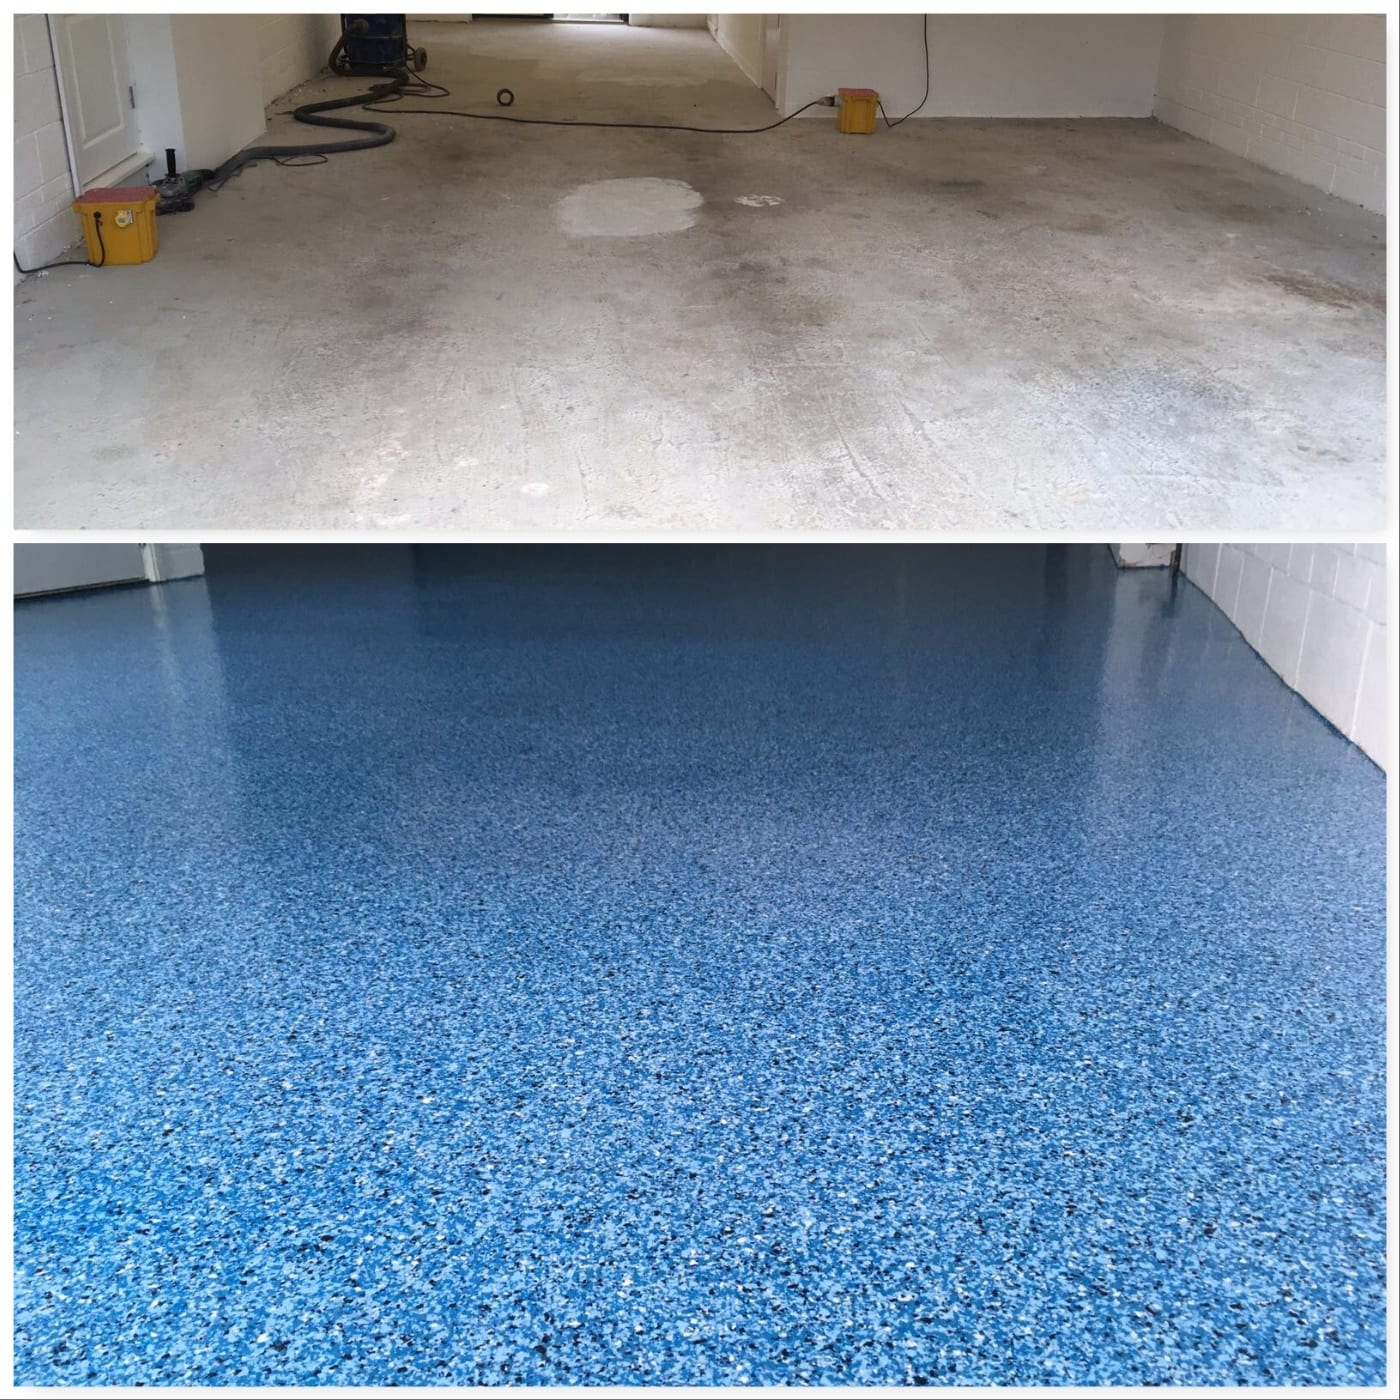 Monarflake - Decorative Resin Flooring